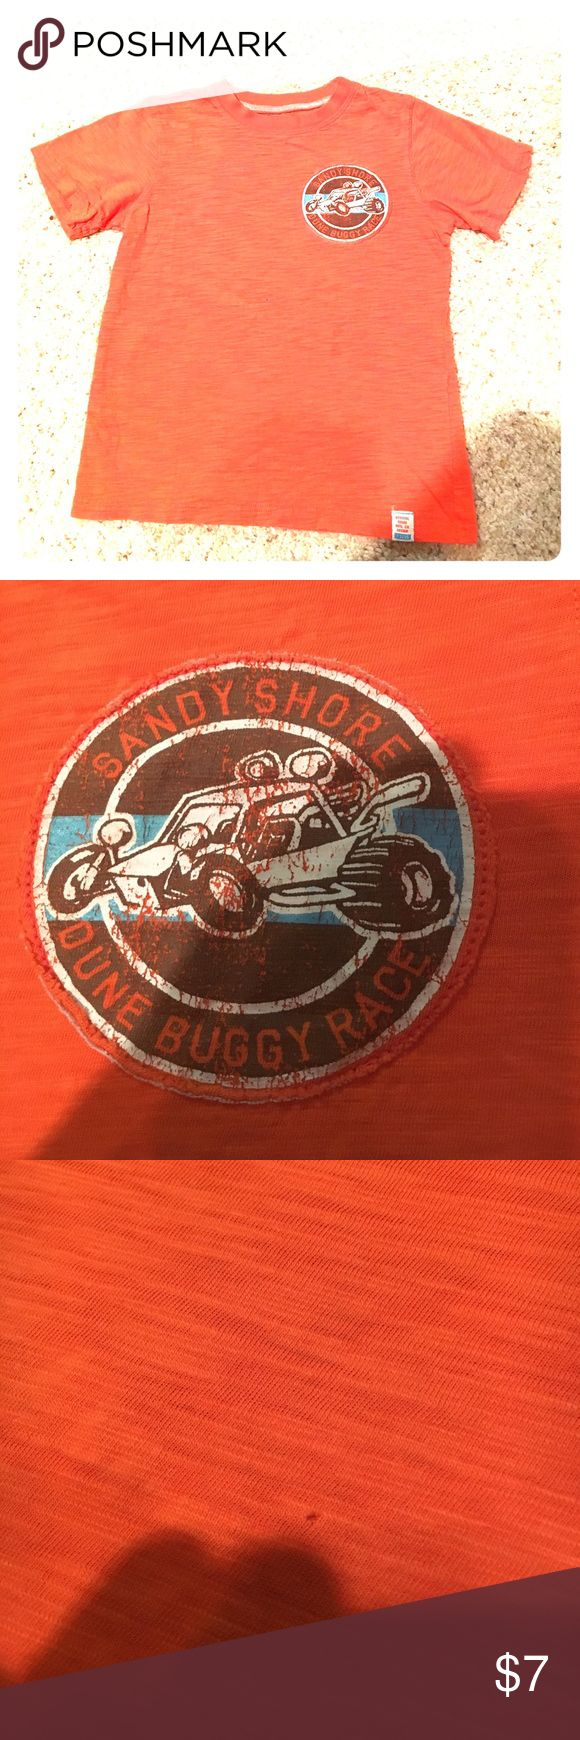 Boys Carter's T-Shirt Adorable Carter's T-shirt Sandyshore dune buggy race size 5 100% fun there is a tiny pinhole on the front see pic tiny. Orange Carter's Shirts & Tops Tees - Short Sleeve